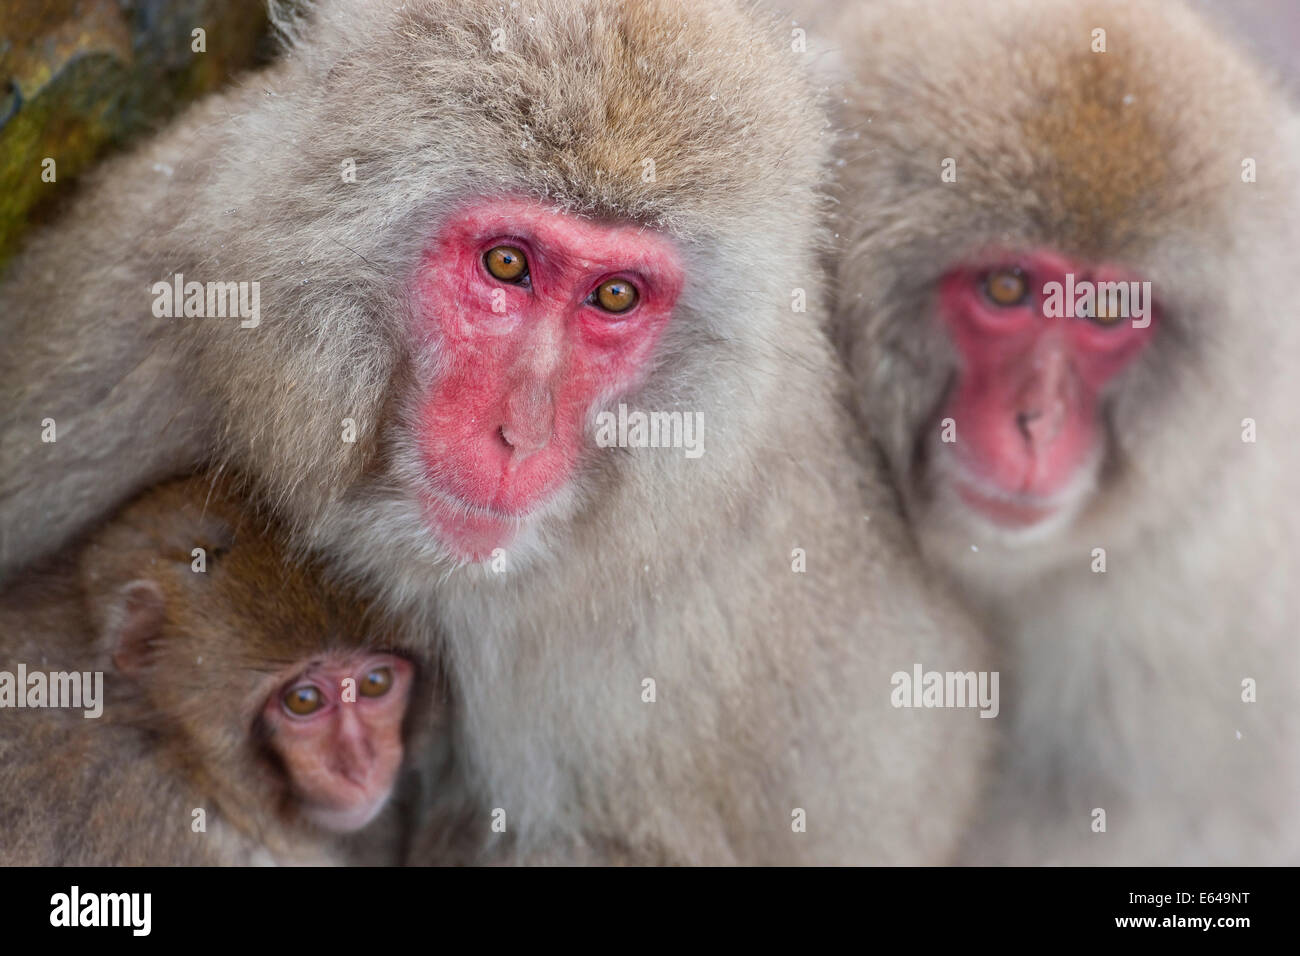 Japanese macaque (Macaca fuscata)/ Snow monkey, Joshin-etsu National Park, Honshu, Japan Stock Photo